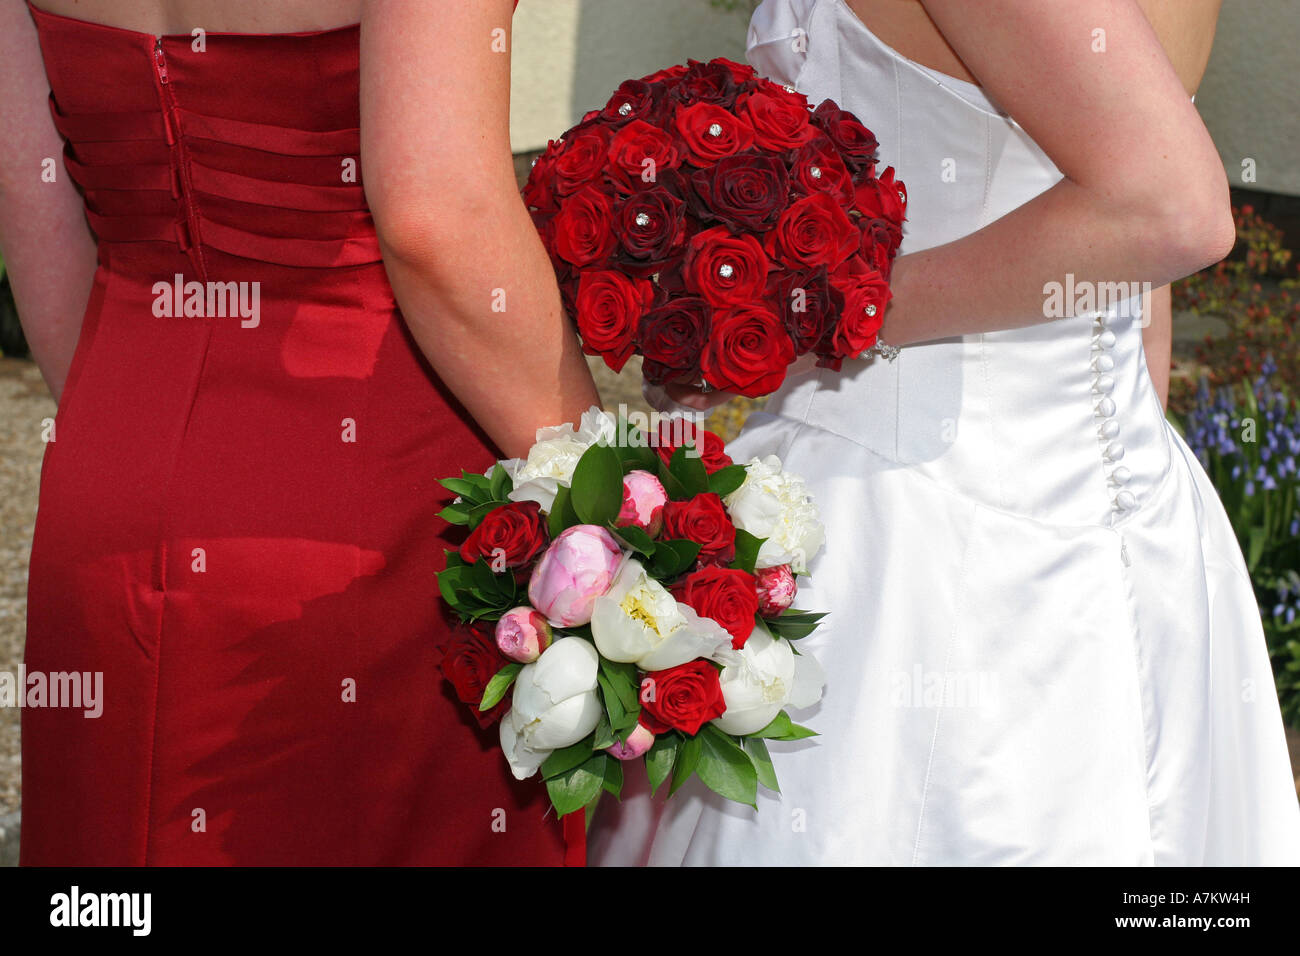 A bride in white wedding dress holds red rose flower bouquet on top a bride in white wedding dress holds red rose flower bouquet on top of red dress bridesmaids colourful flowers wedding day uk izmirmasajfo Choice Image